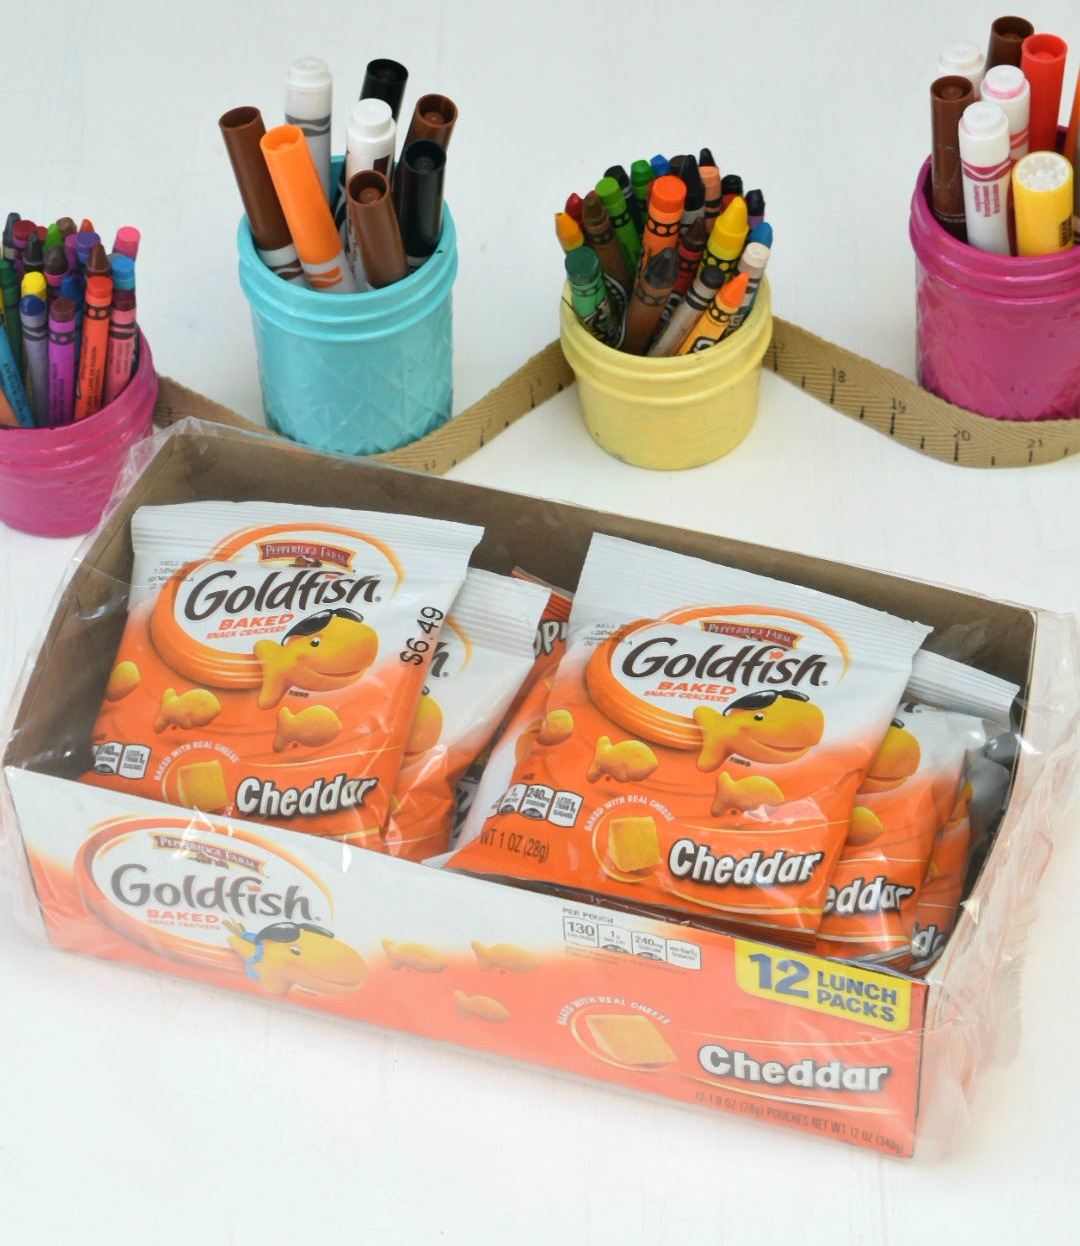 Goldfish in package back to school